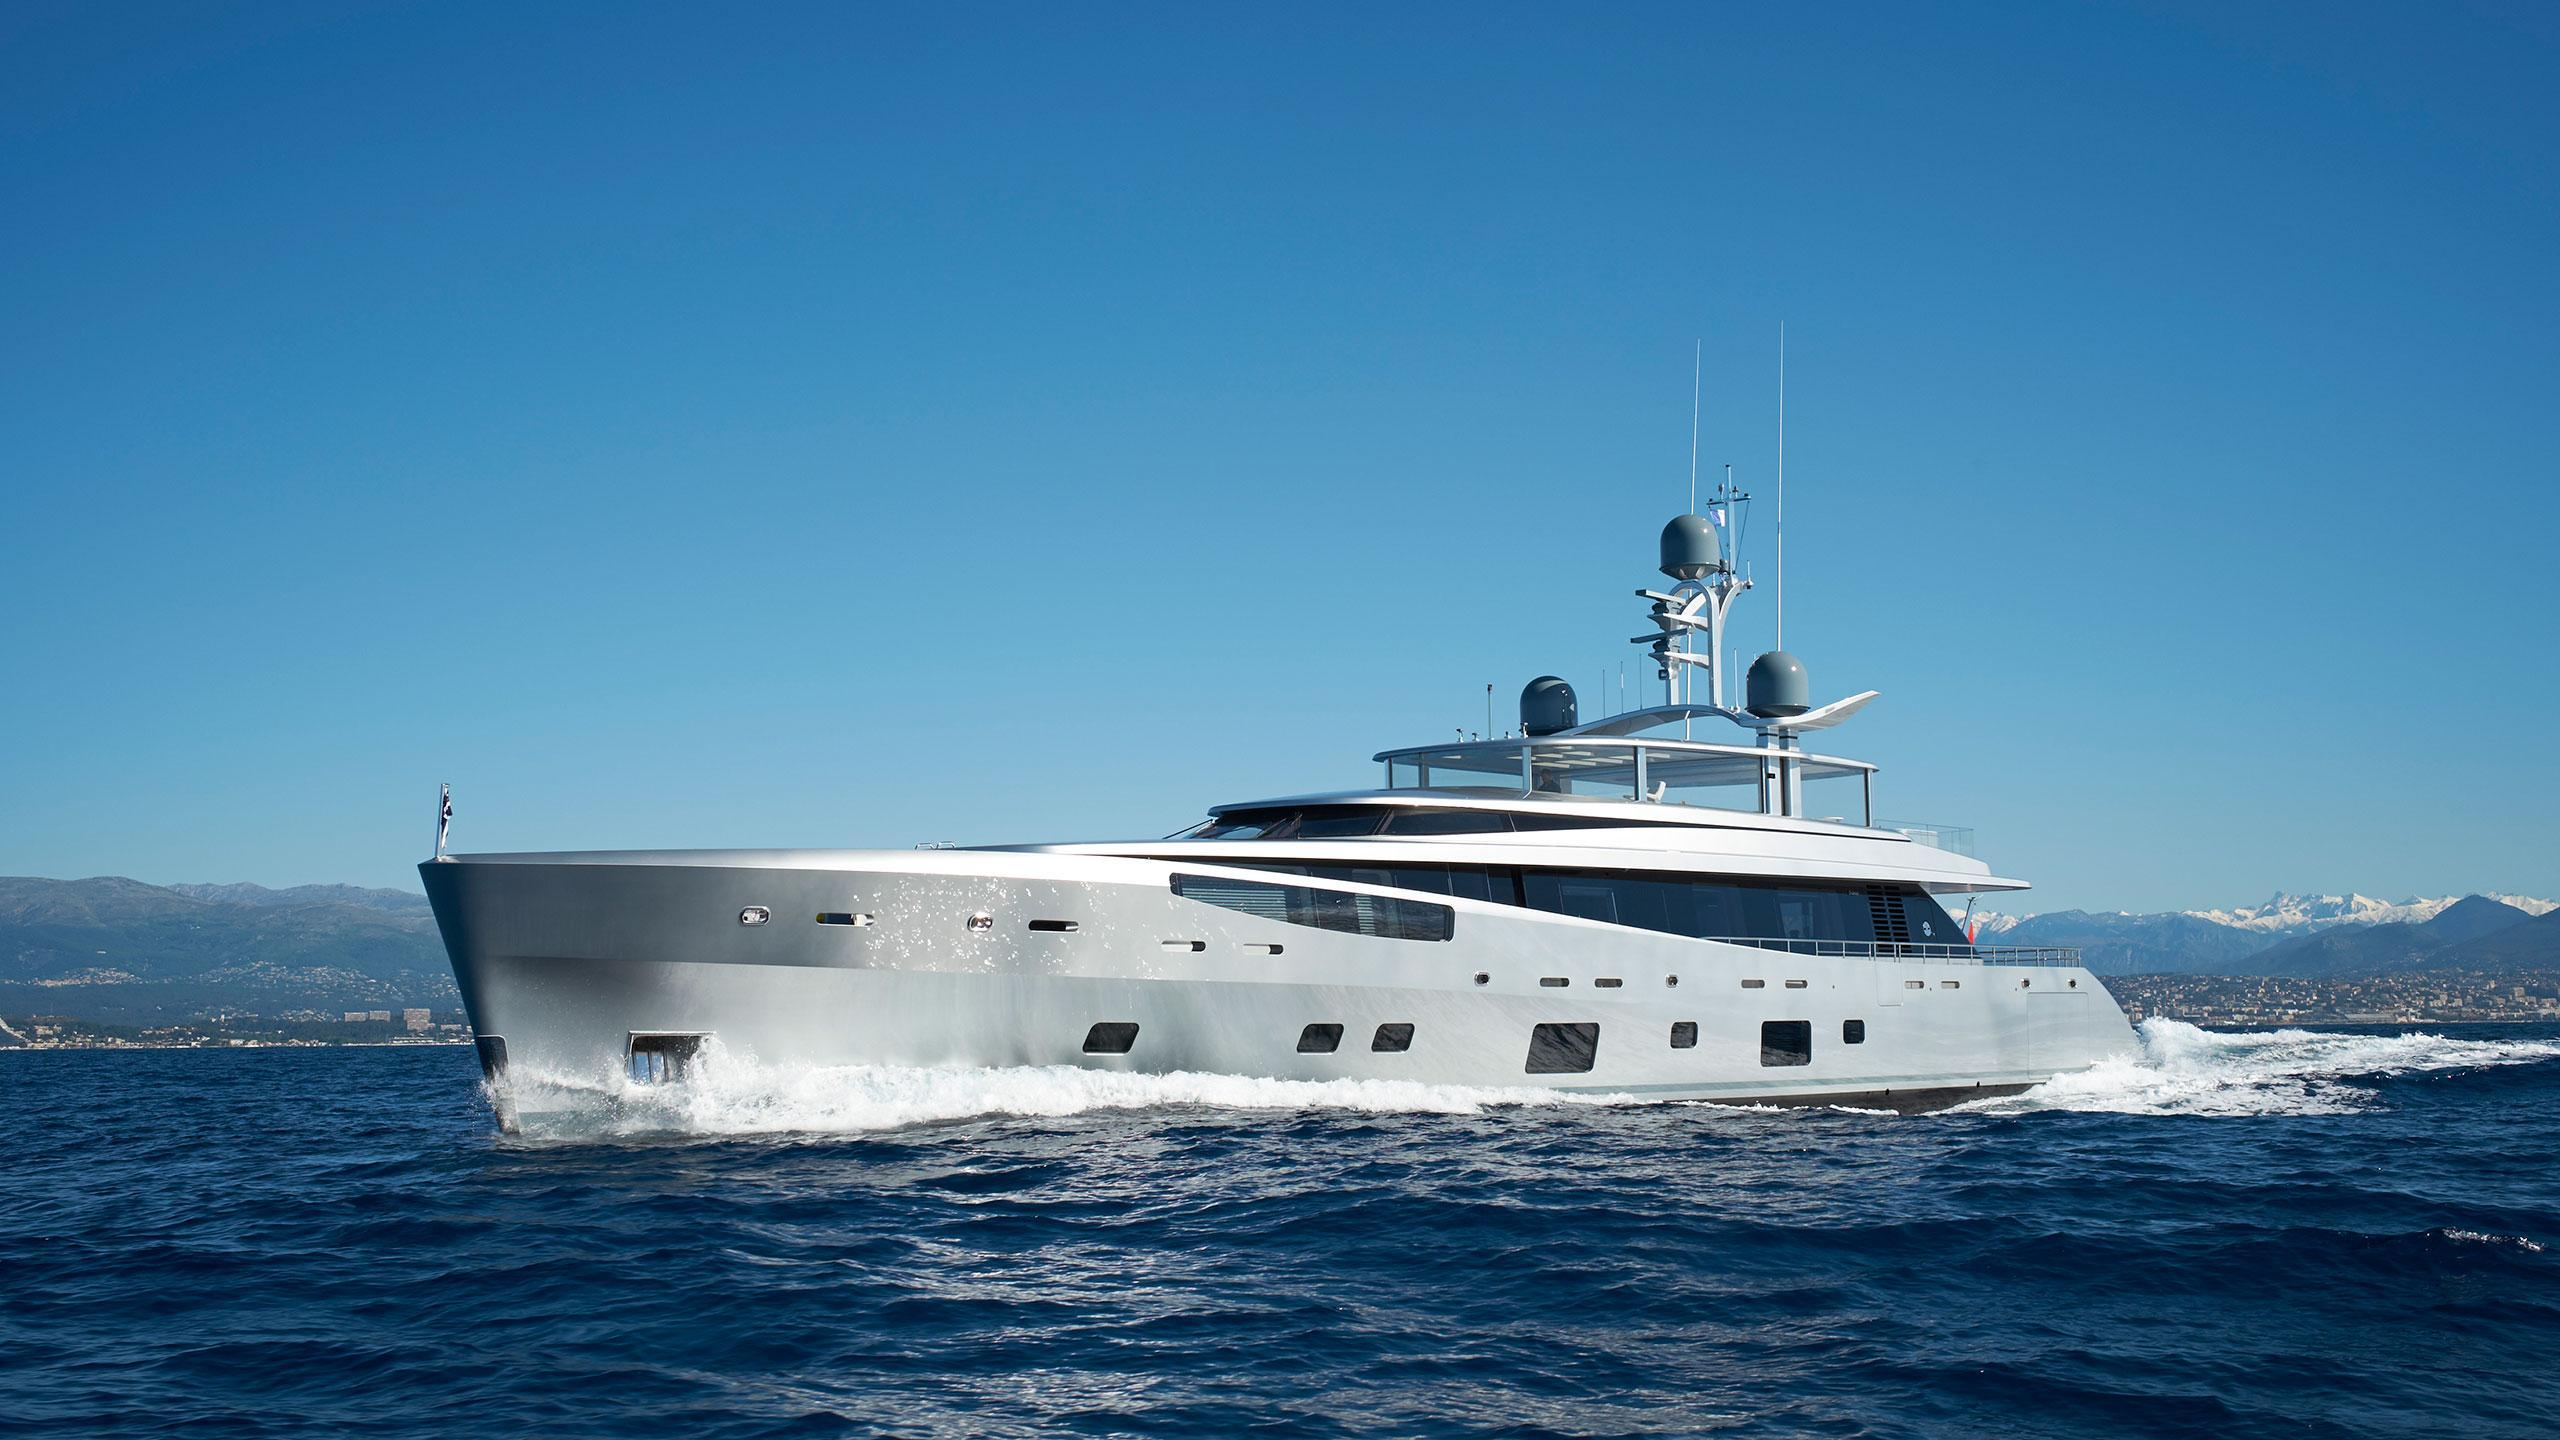 lady-may-motor-yacht-feadship-46m-2014-front-profile-cruising